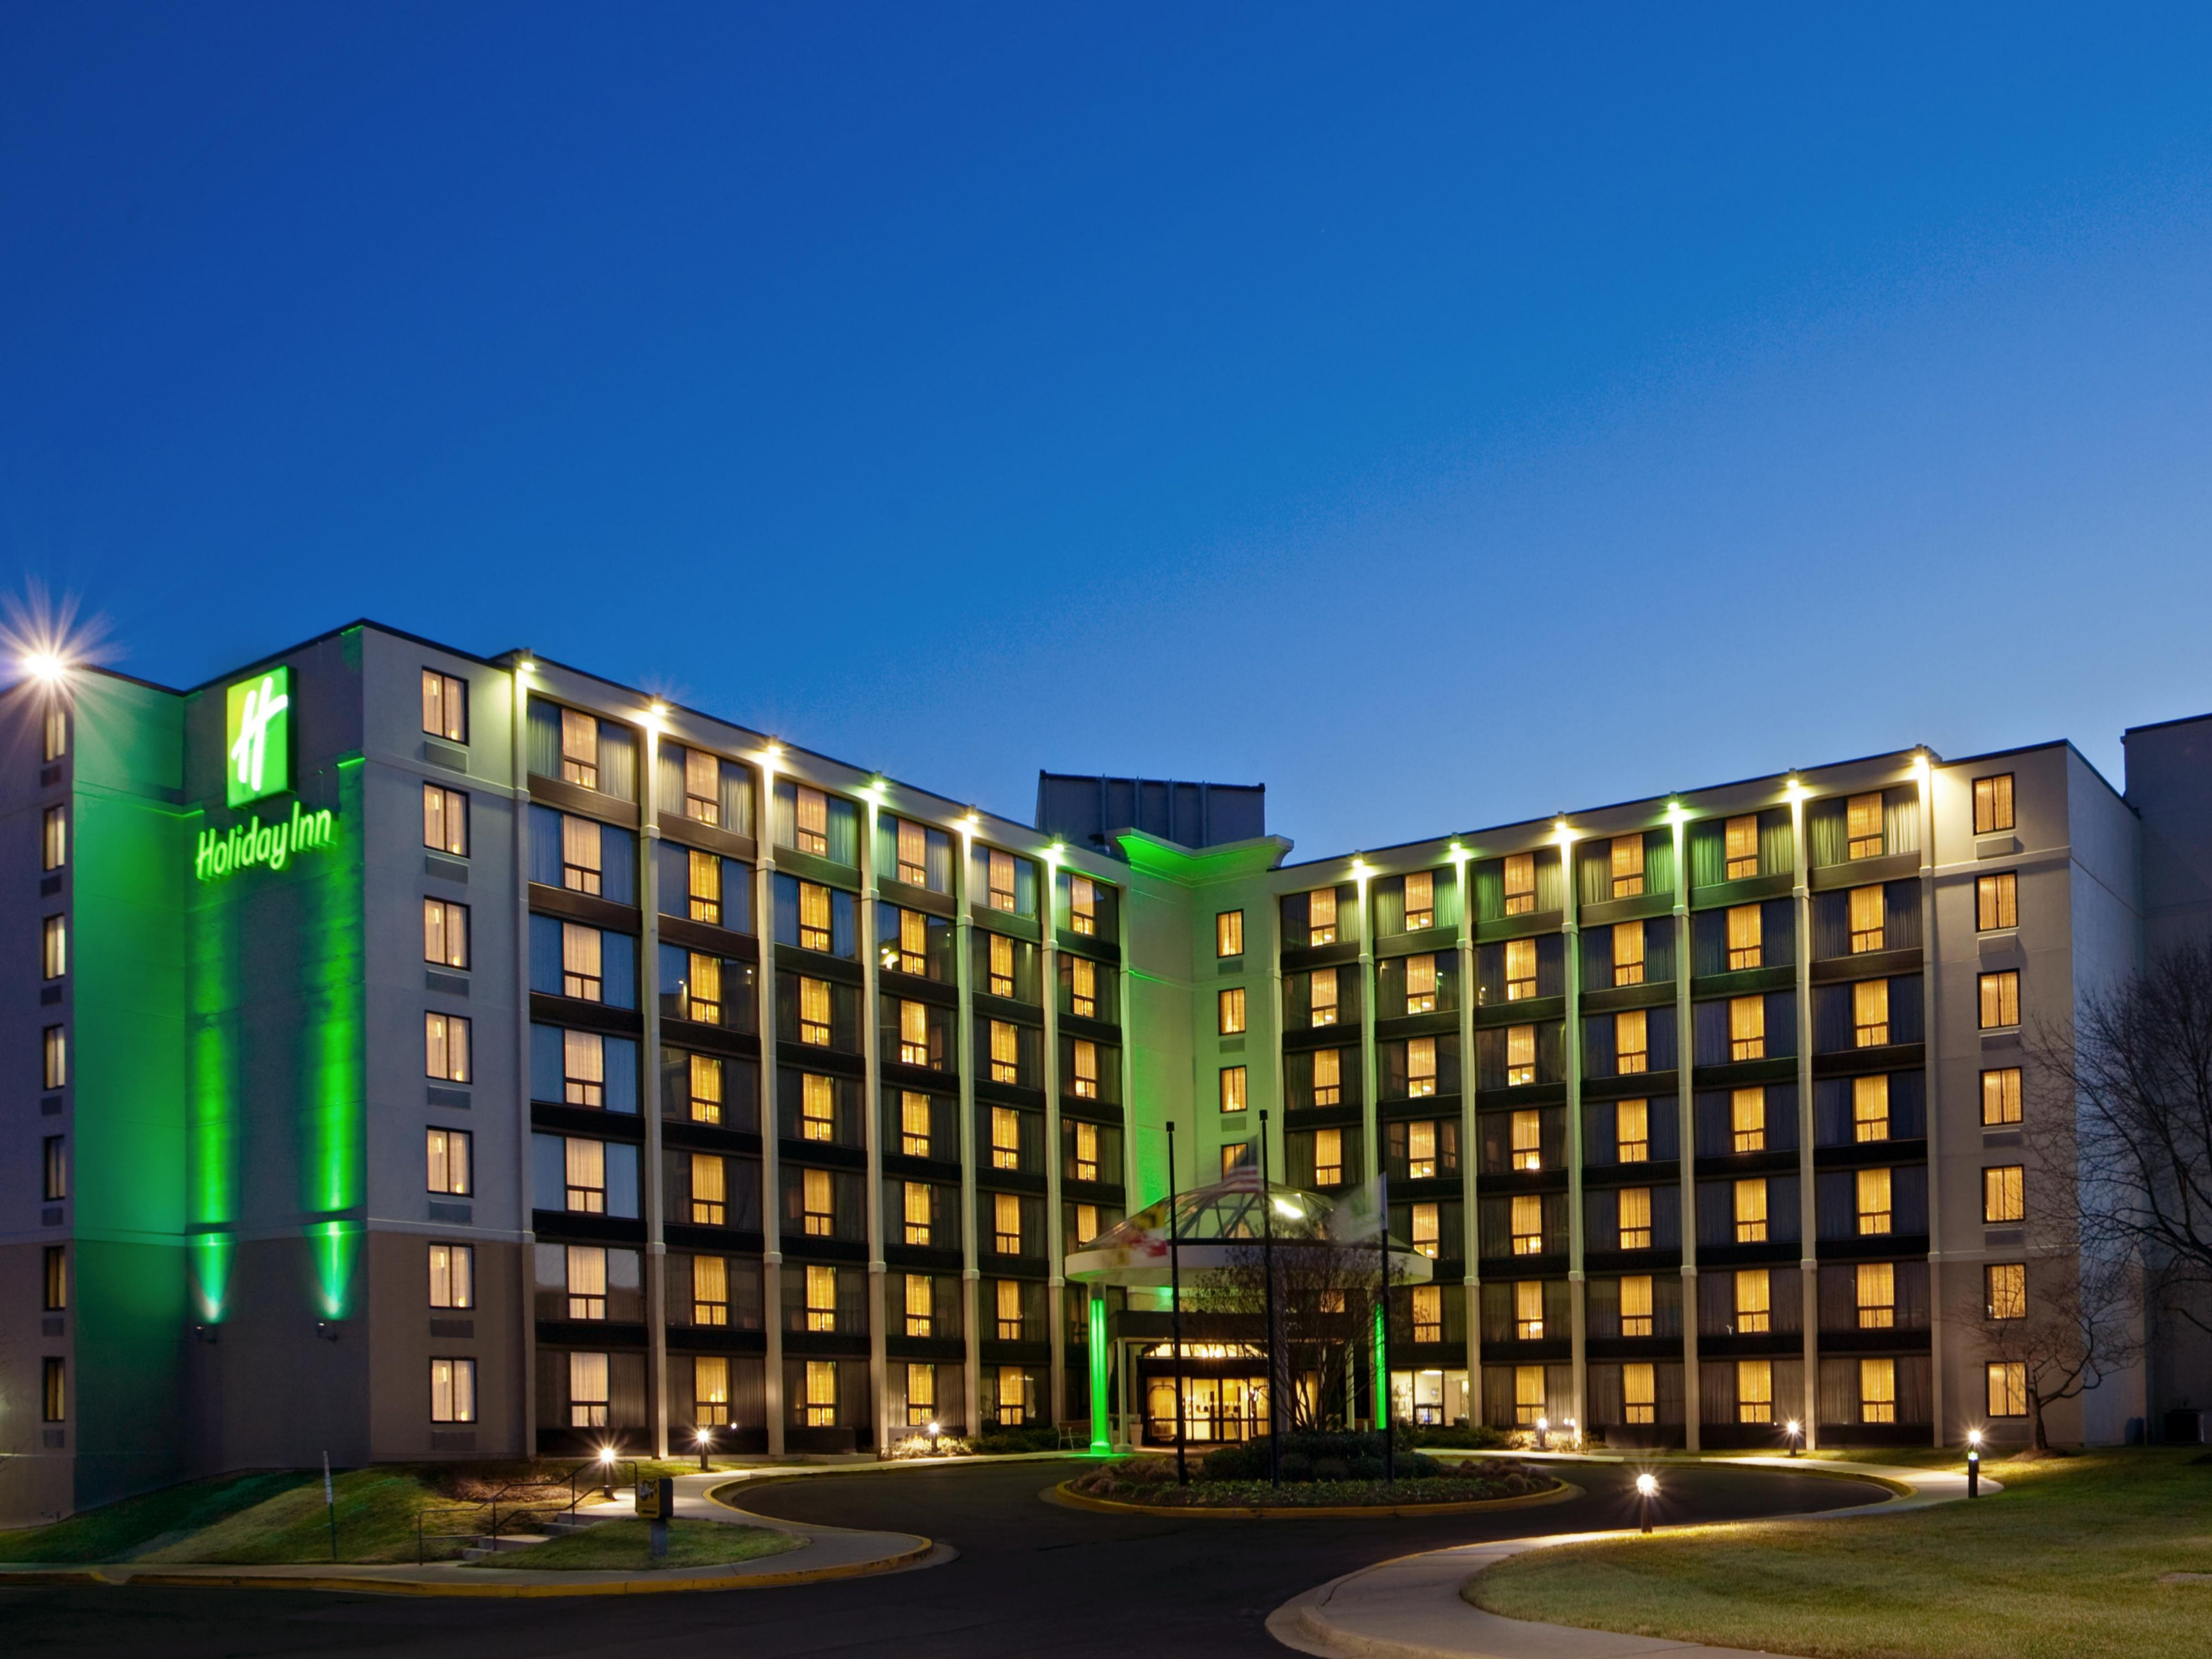 Welcome to the Holiday Inn Greenbelt. Come on in!